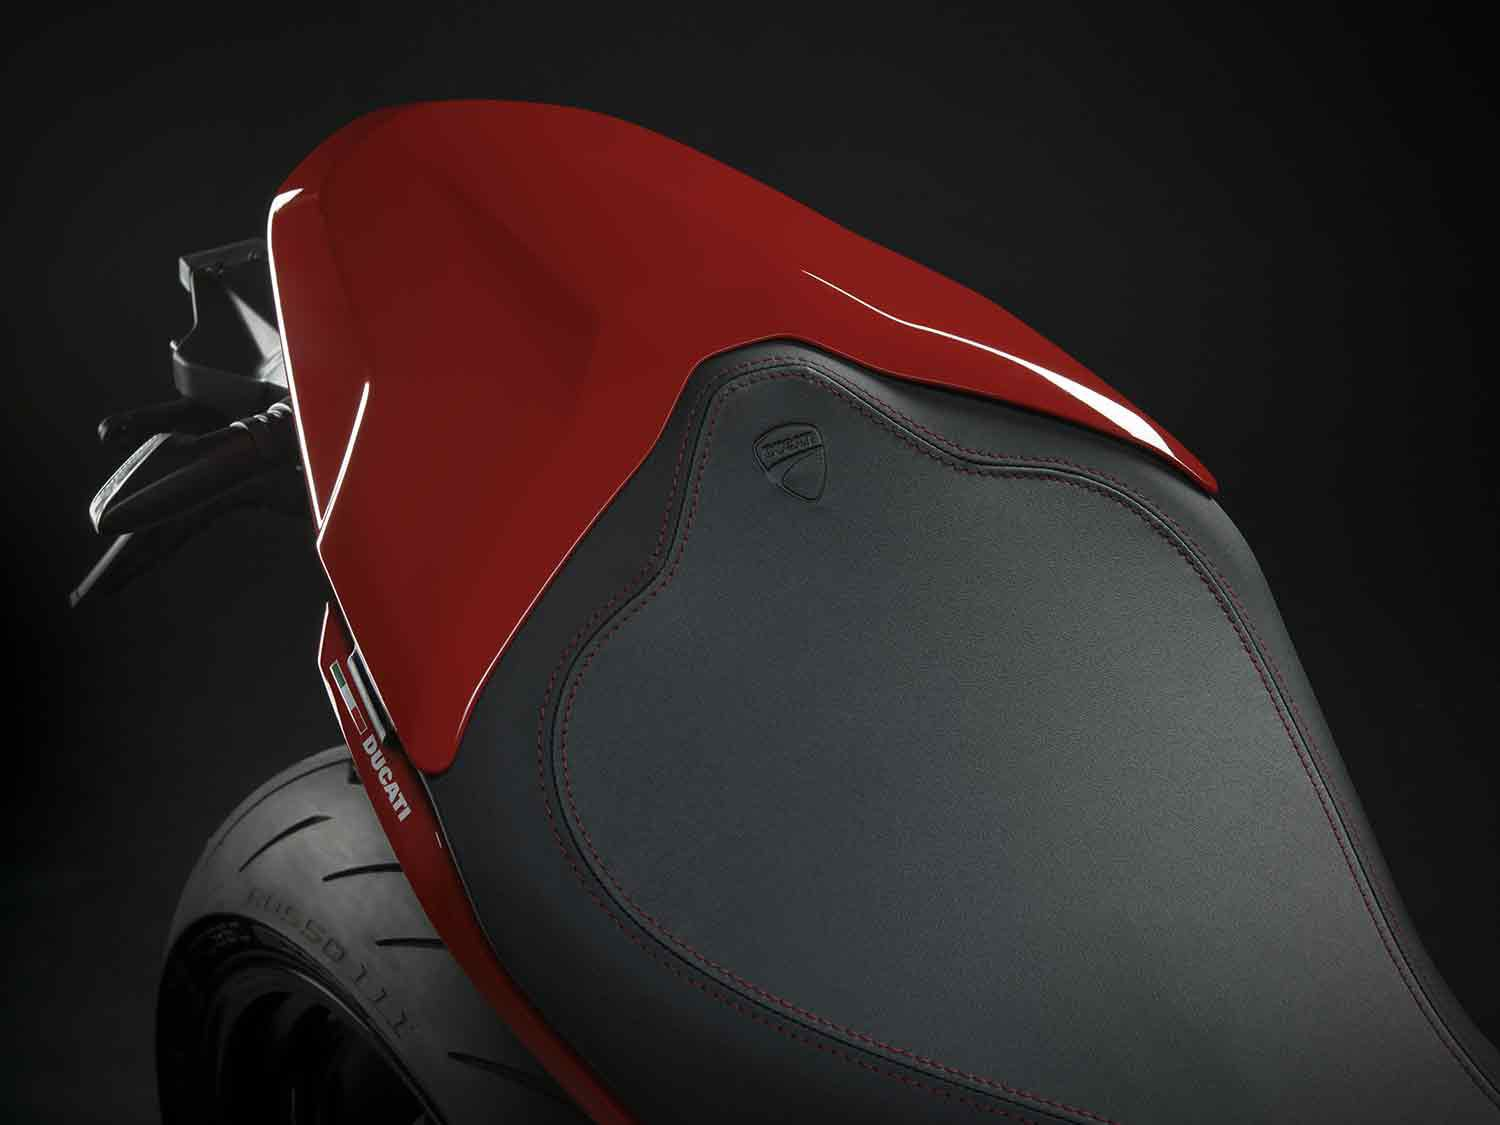 The SuperSport comes well equipped for two-up riding but can be had with a rear seat cover for solo days.